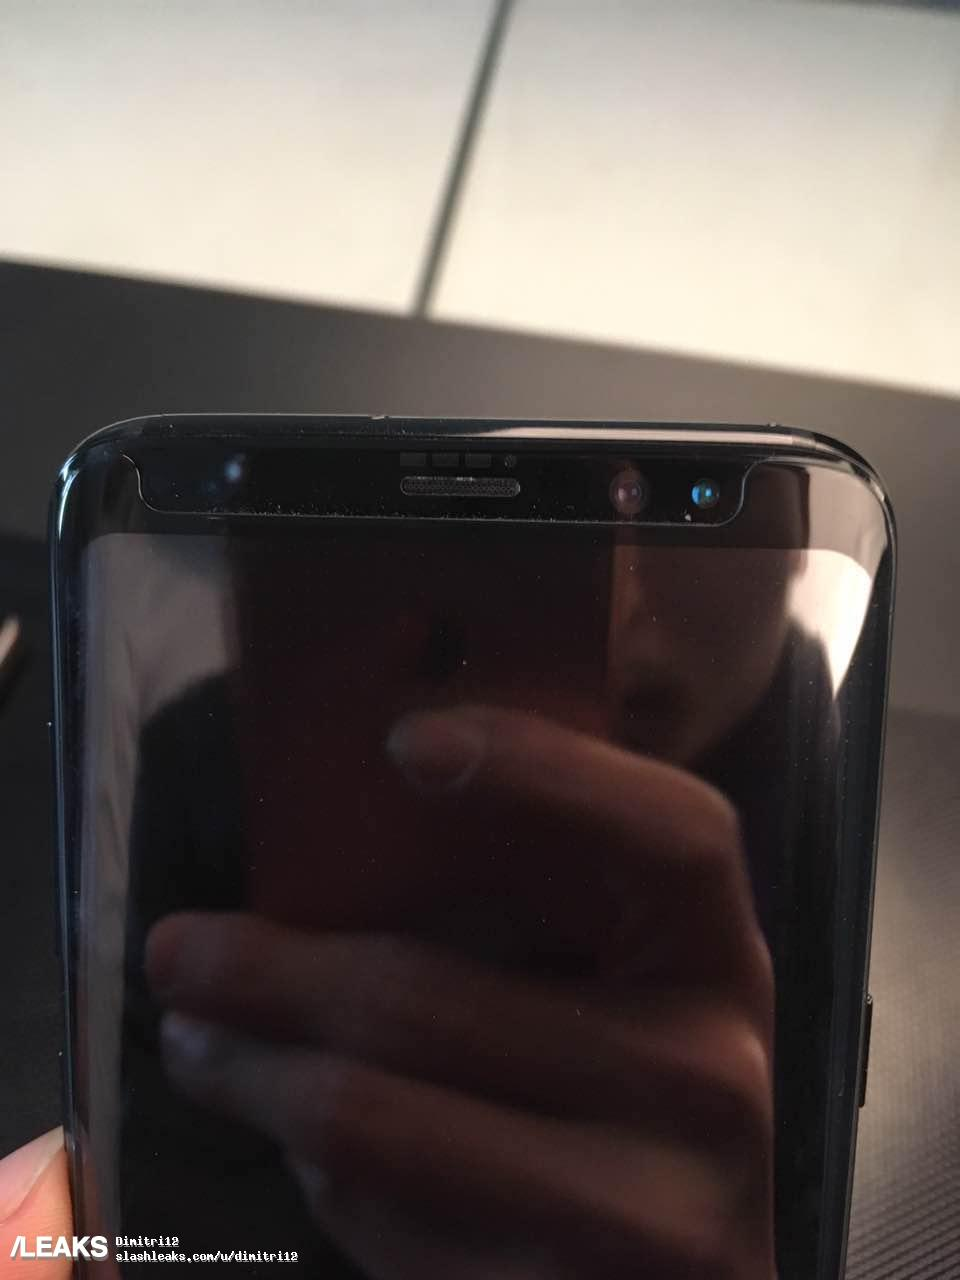 Real Life Images Show Galaxy S8 & S8 Plus Side by Side 1